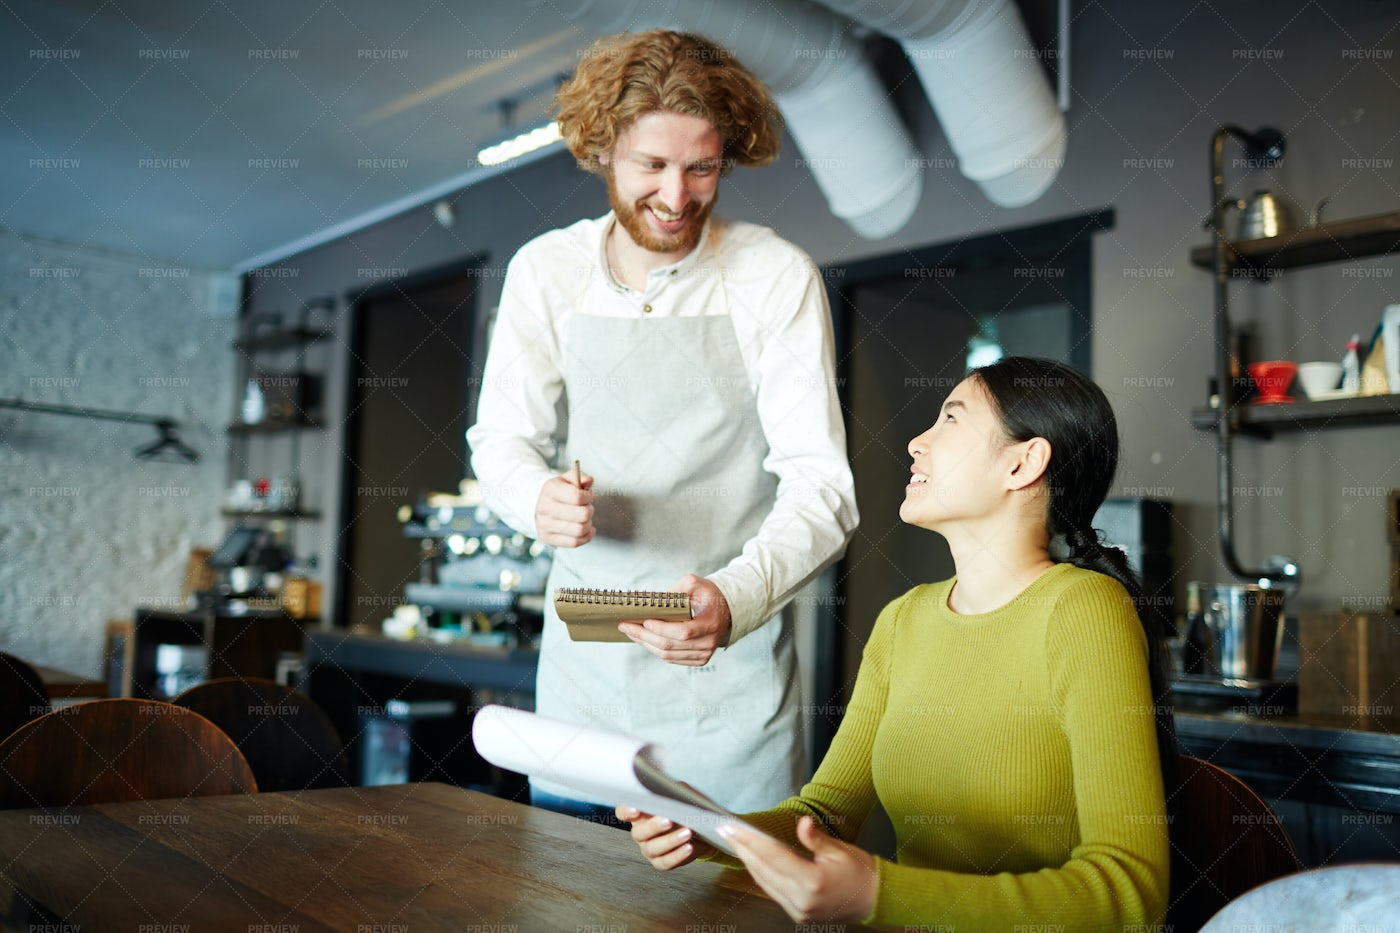 Making Order In Cafe: Stock Photos